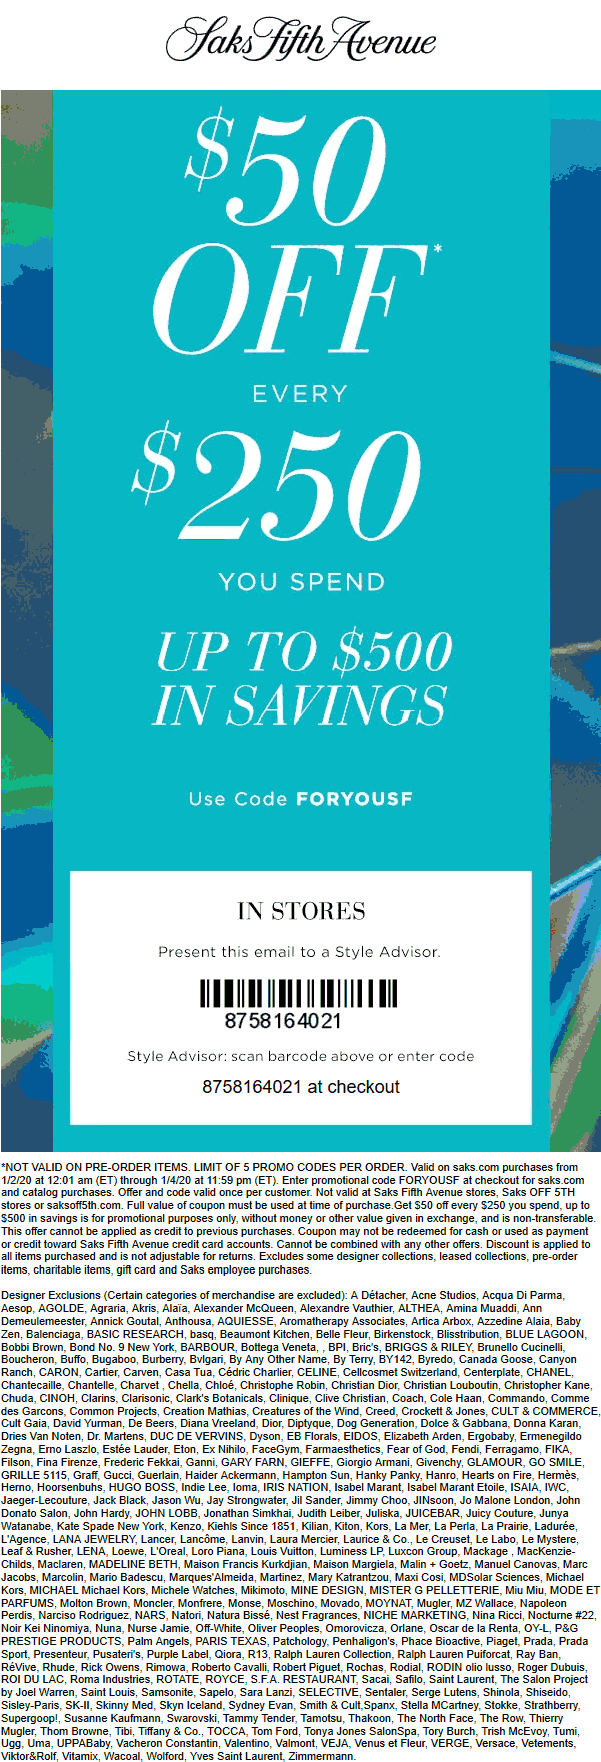 Saks Fifth Avenue coupons & promo code for [September 2020]